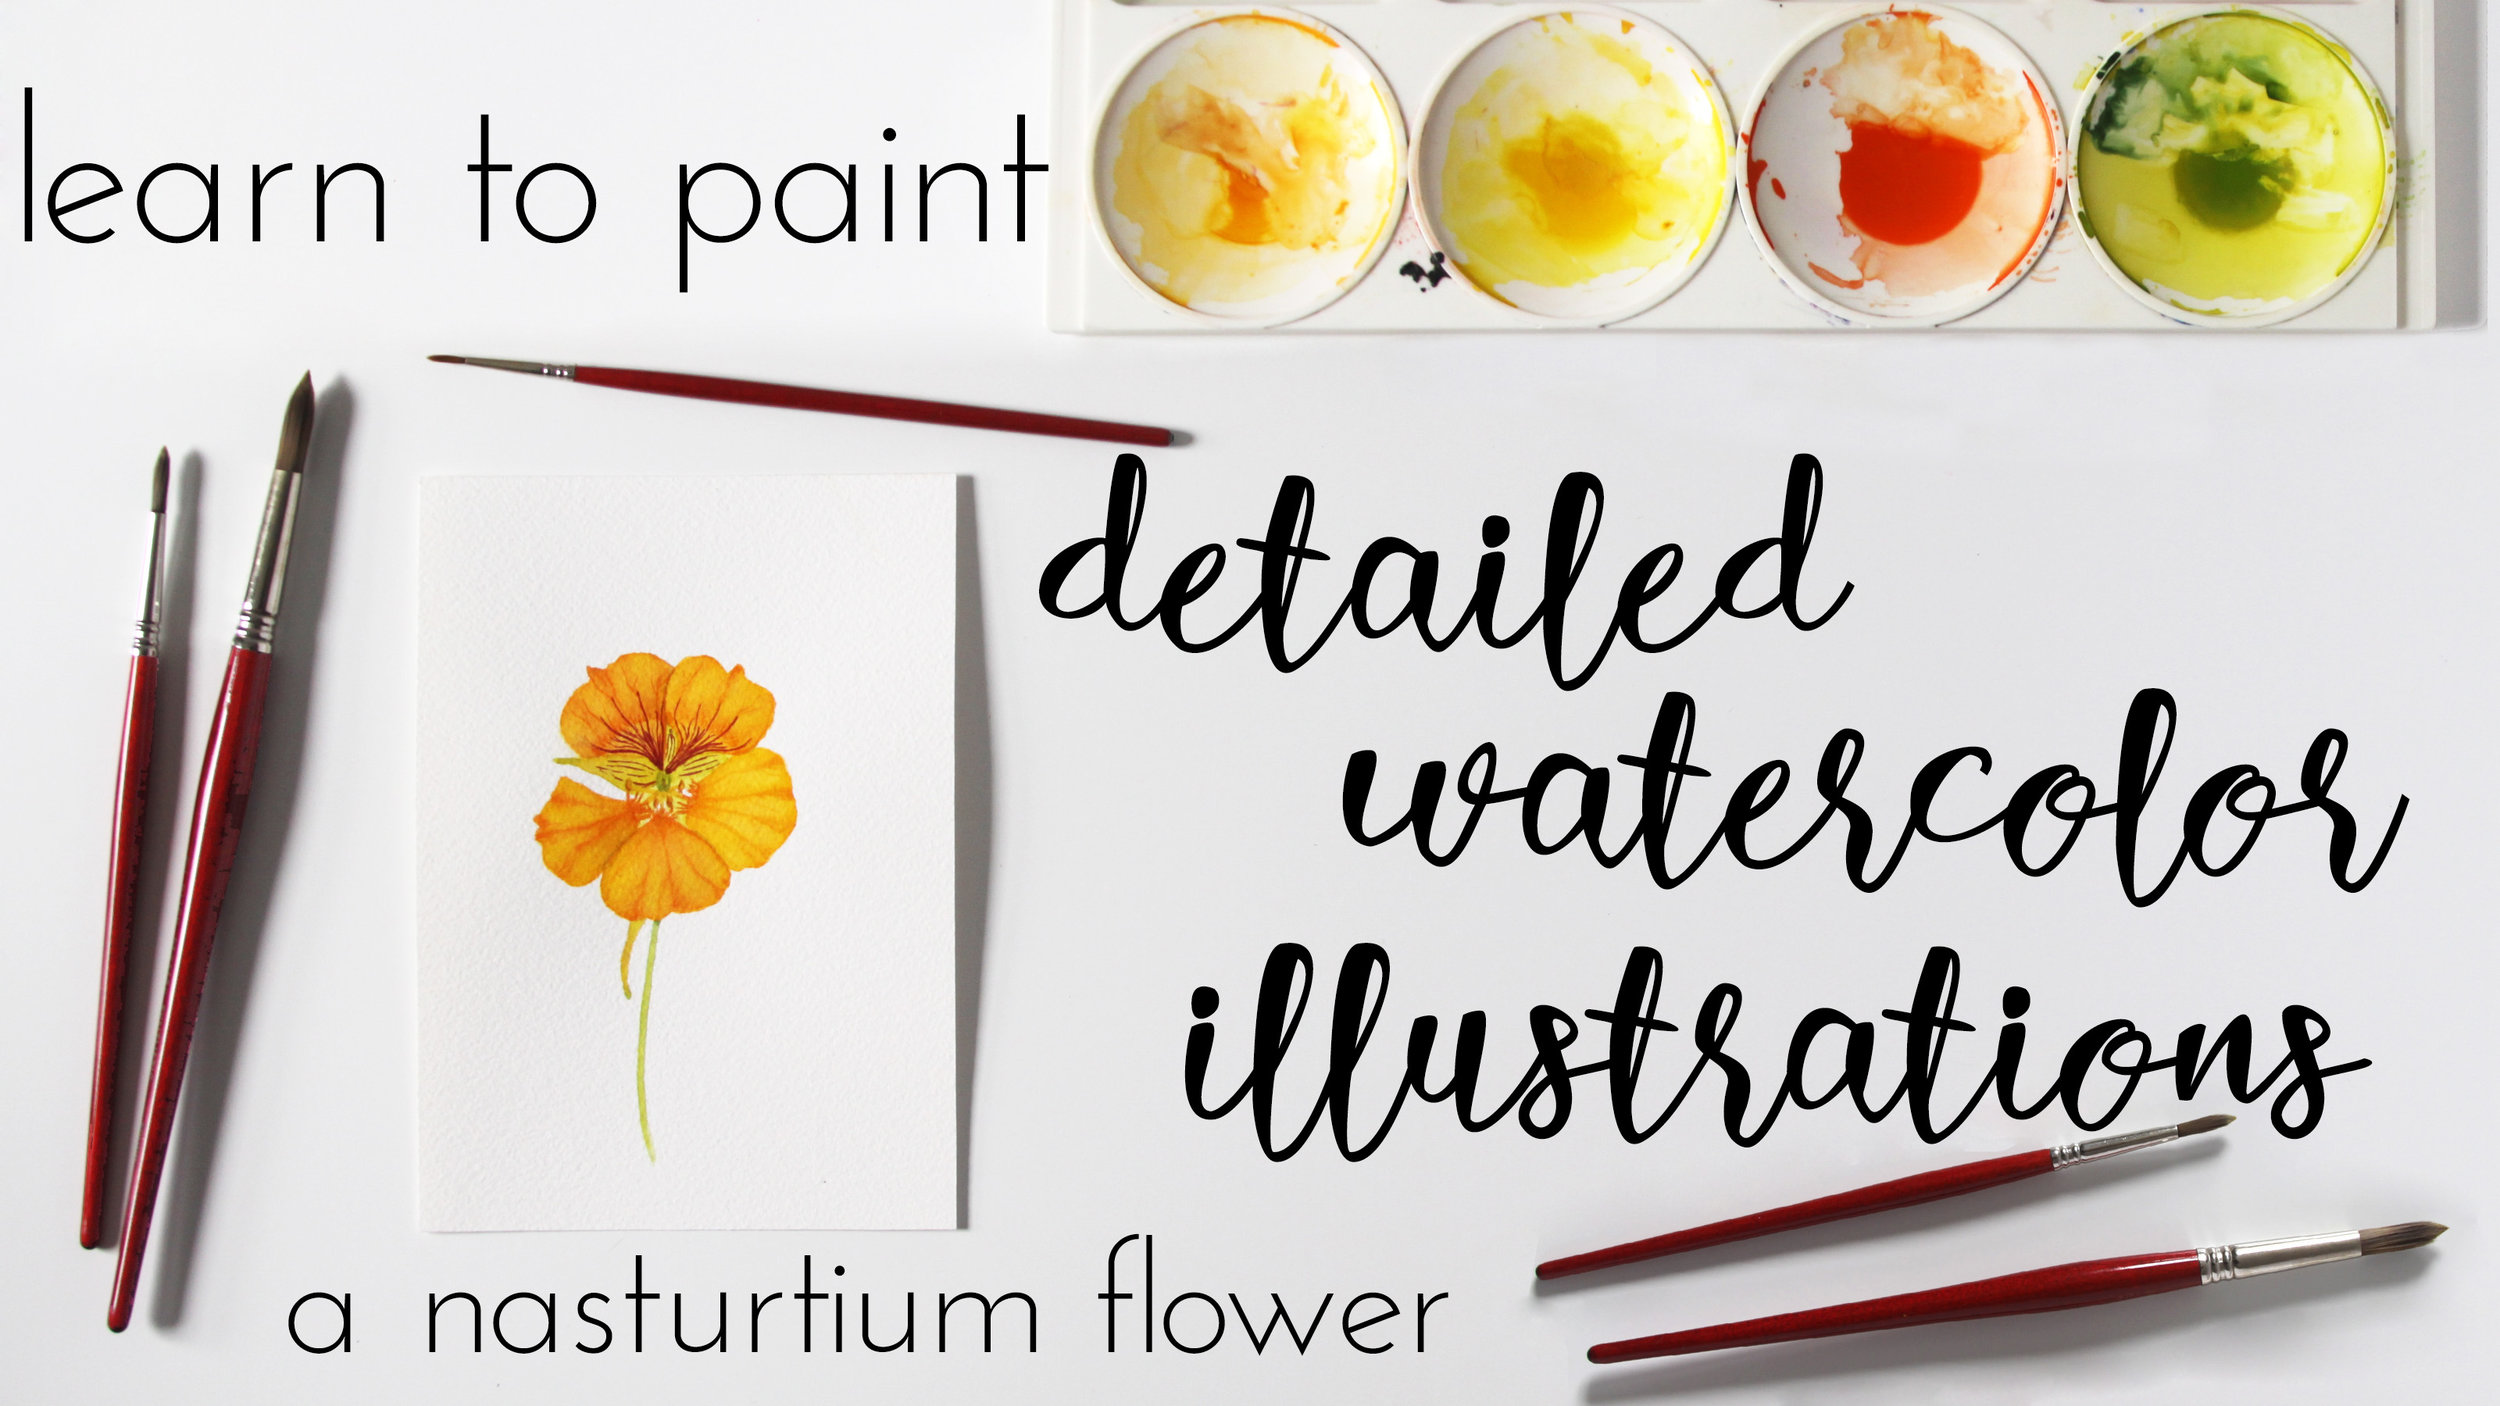 Learn to Paint a Nasturtium Flower